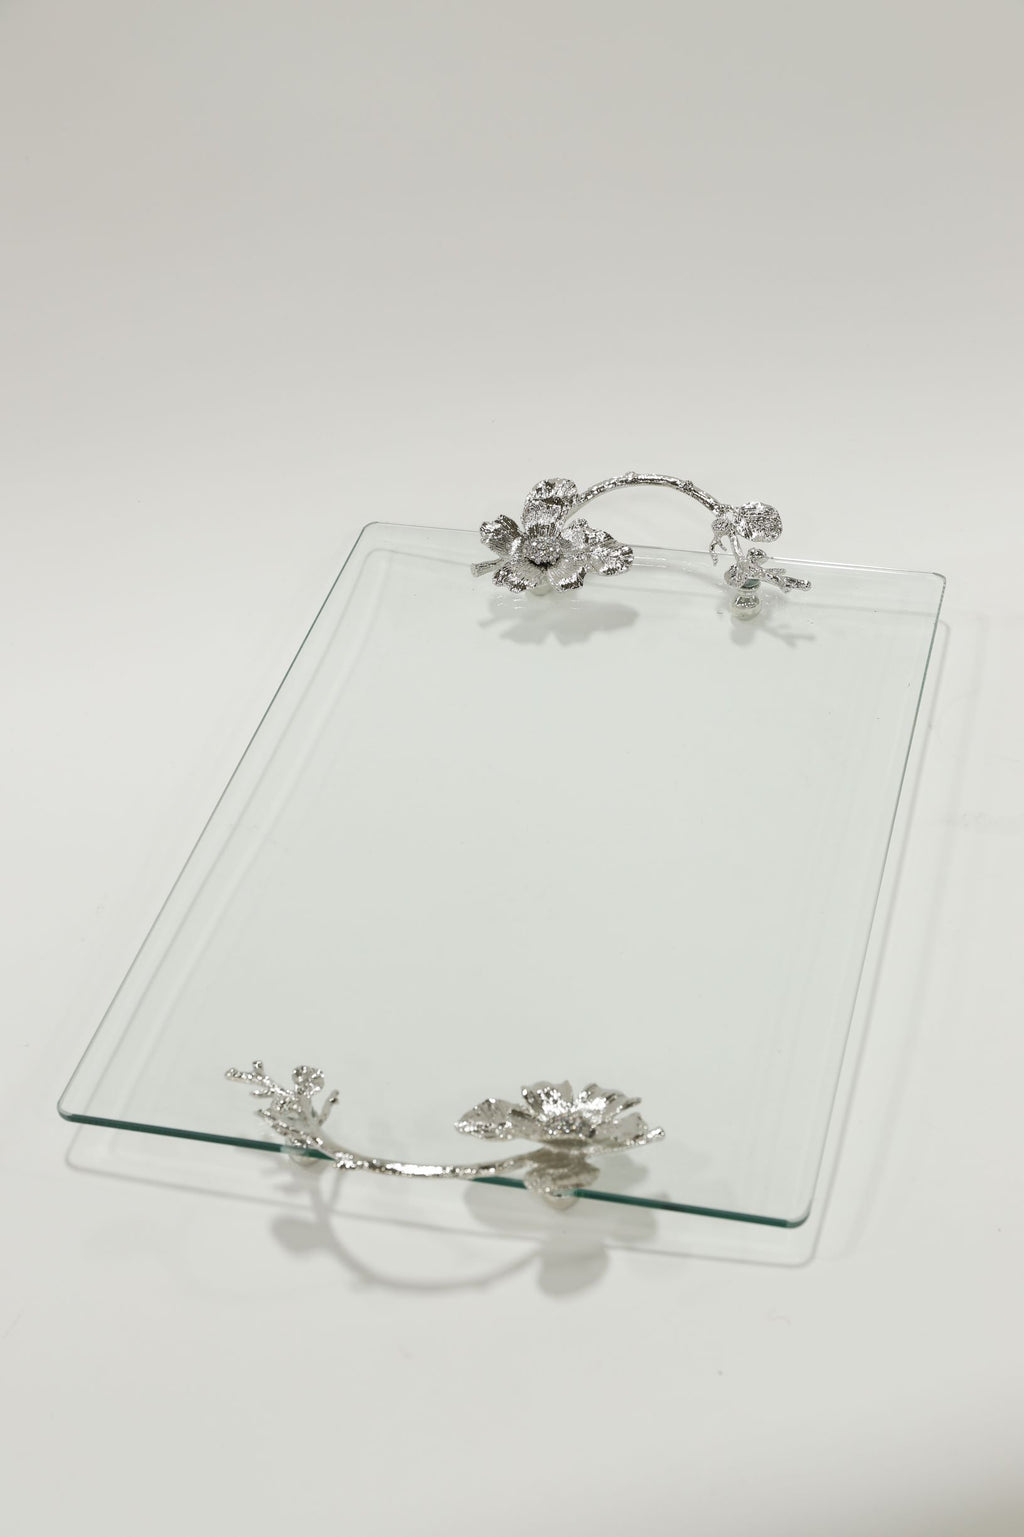 Silver Floral Crystal Handled Glass Tray-Inspire Me! Home Decor